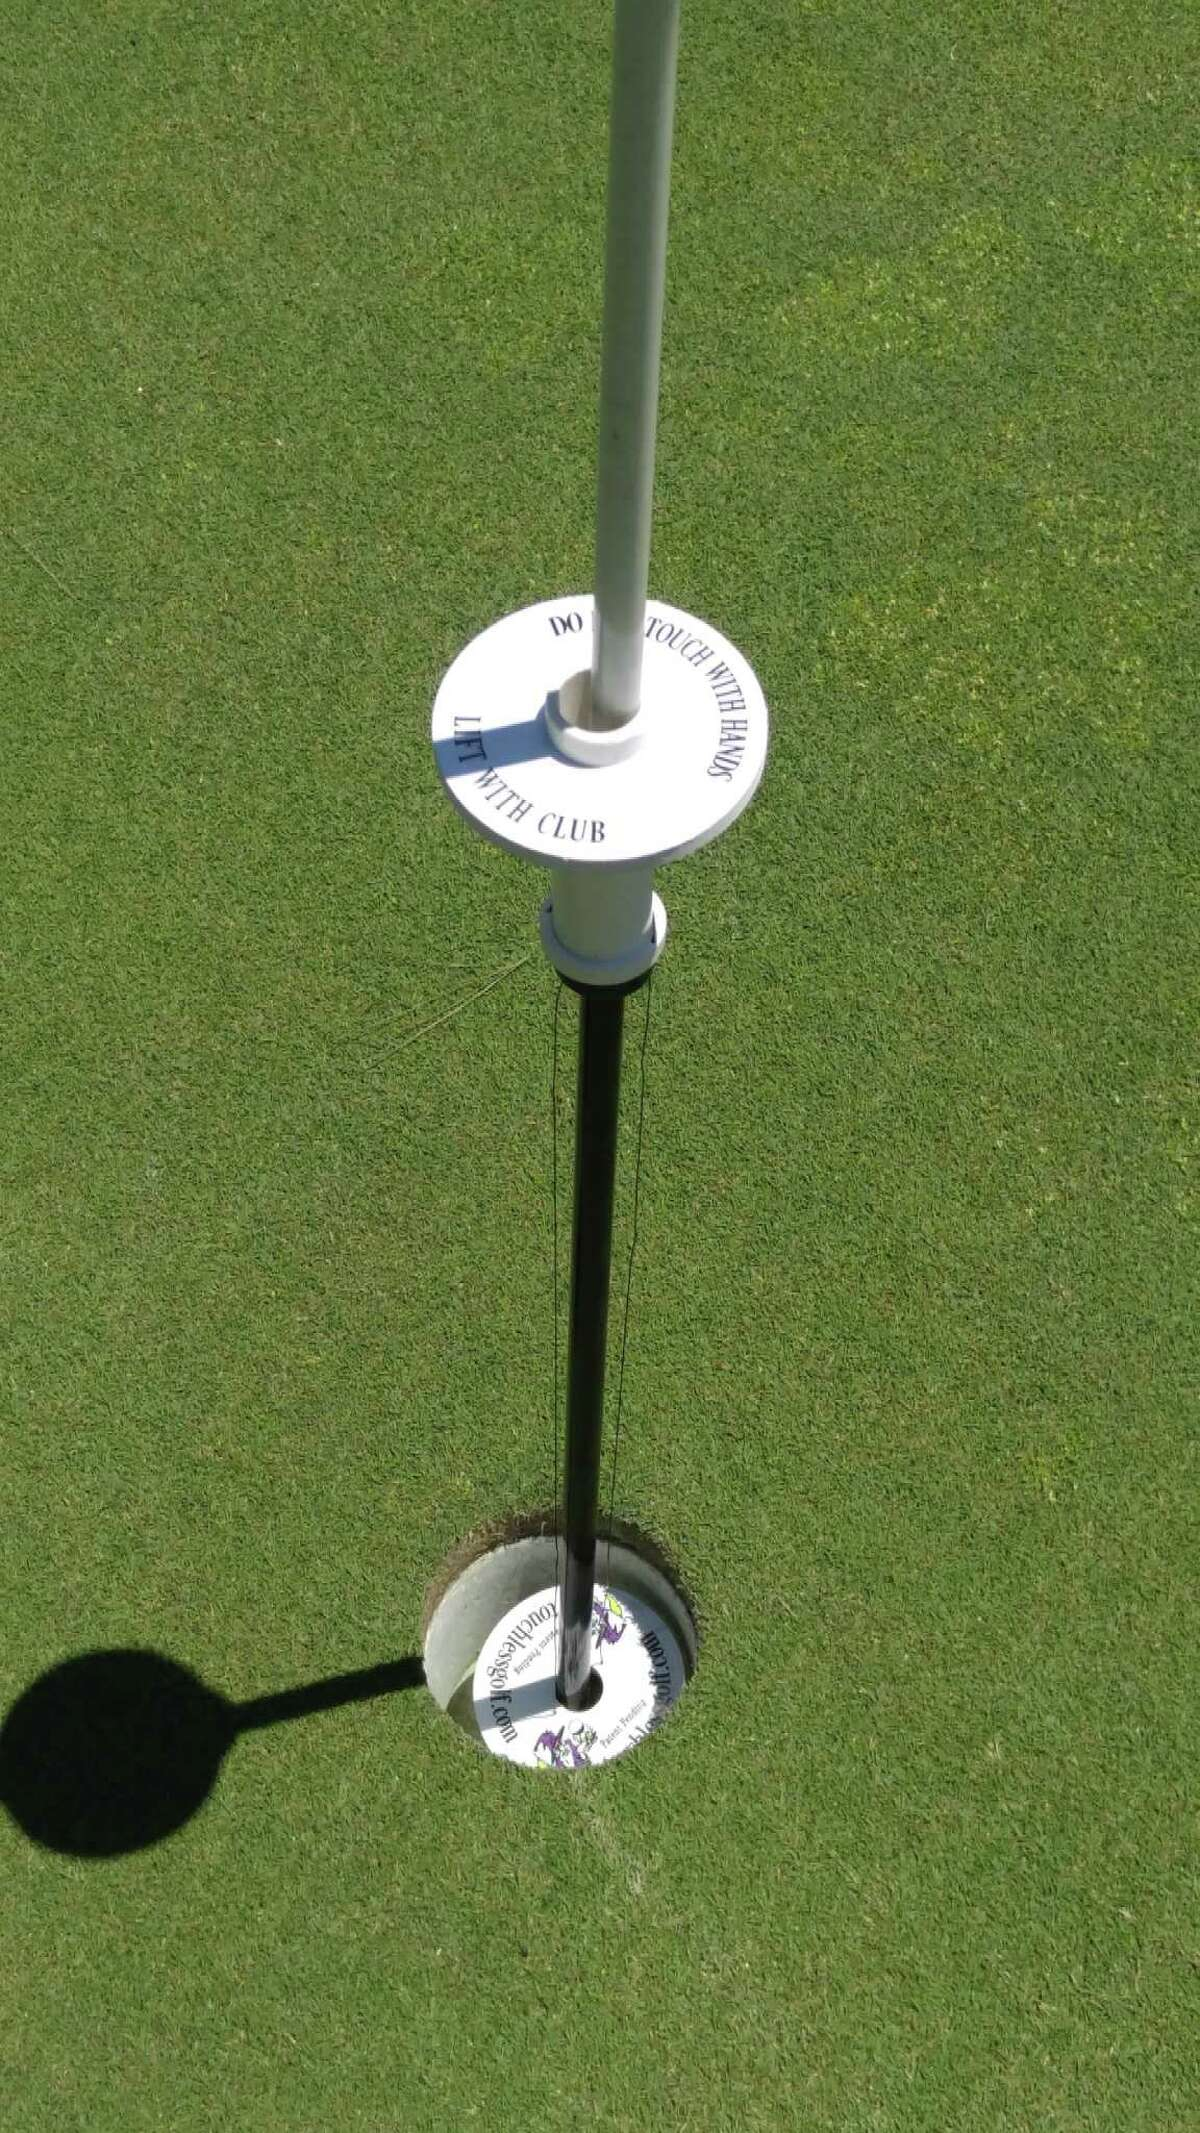 A ball-retrieving device, enabling players to remove their golf ball from the hole without touching the flagstick, was employed Monday, June 8, 2020, during the Northeastern New York PGA Pro-Pro at Waubeeka Golf Links in Williamstown, Mass. Because of the COVID-19 pandemic, this marked the section's first event of the season. (Pete Dougherty/Times Union)